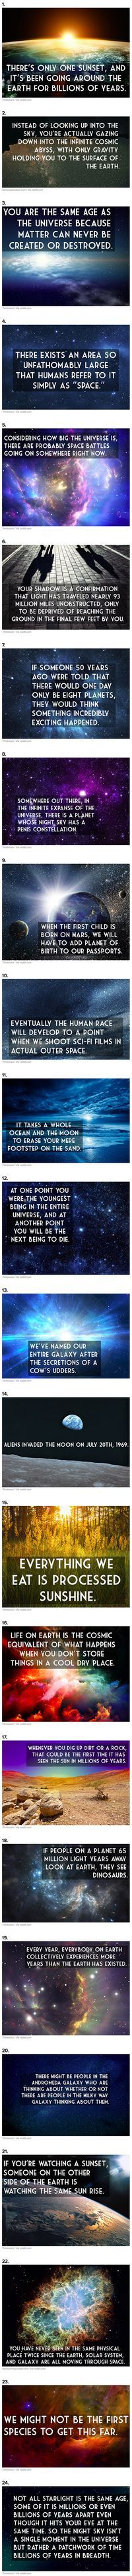 24 Fascinating Thoughts About the Universe